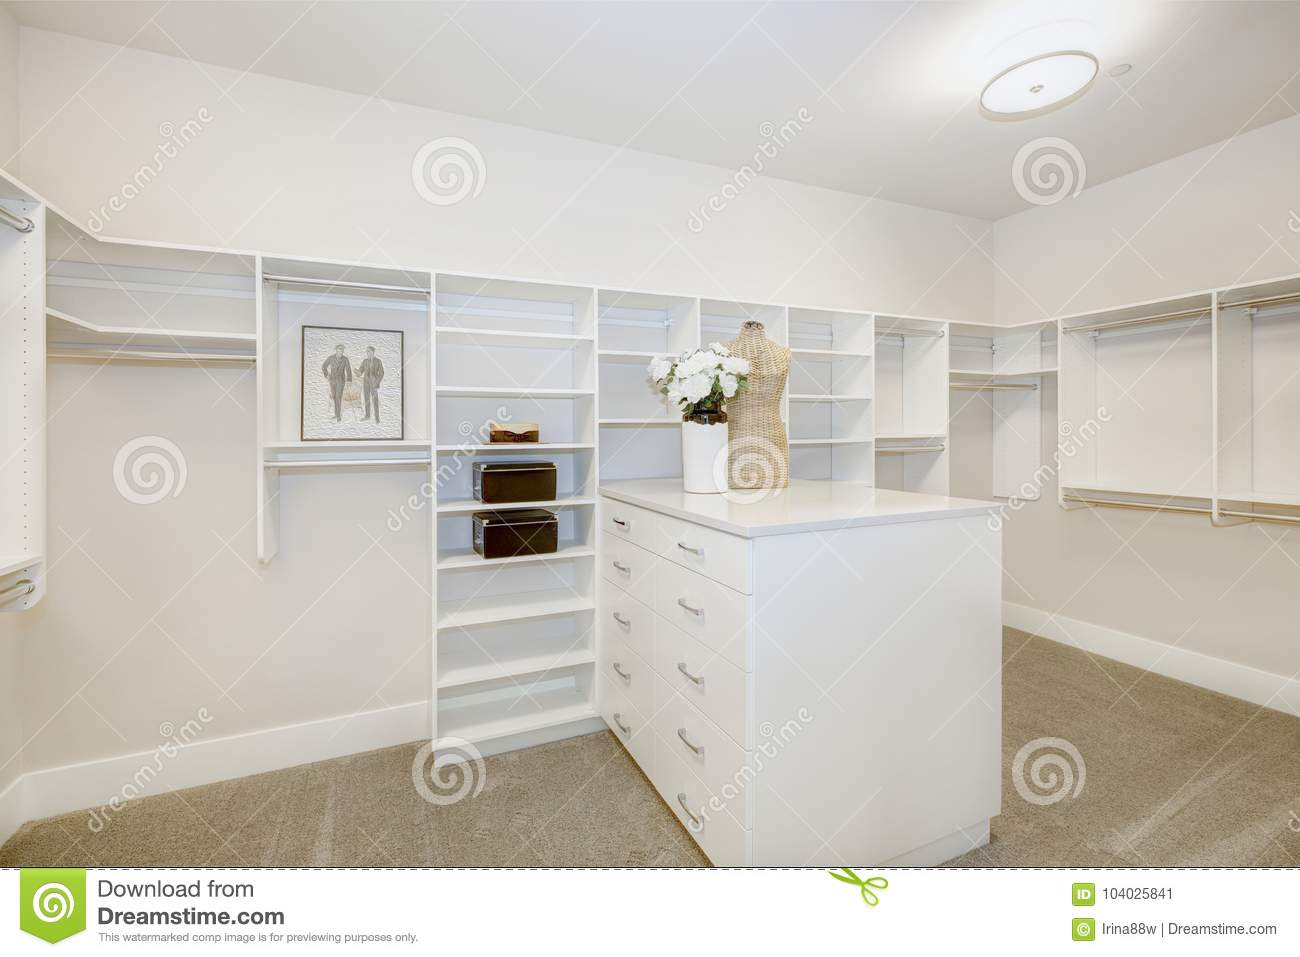 Huge Walk In Closet With Shelves, Drawers And Clothes Rails